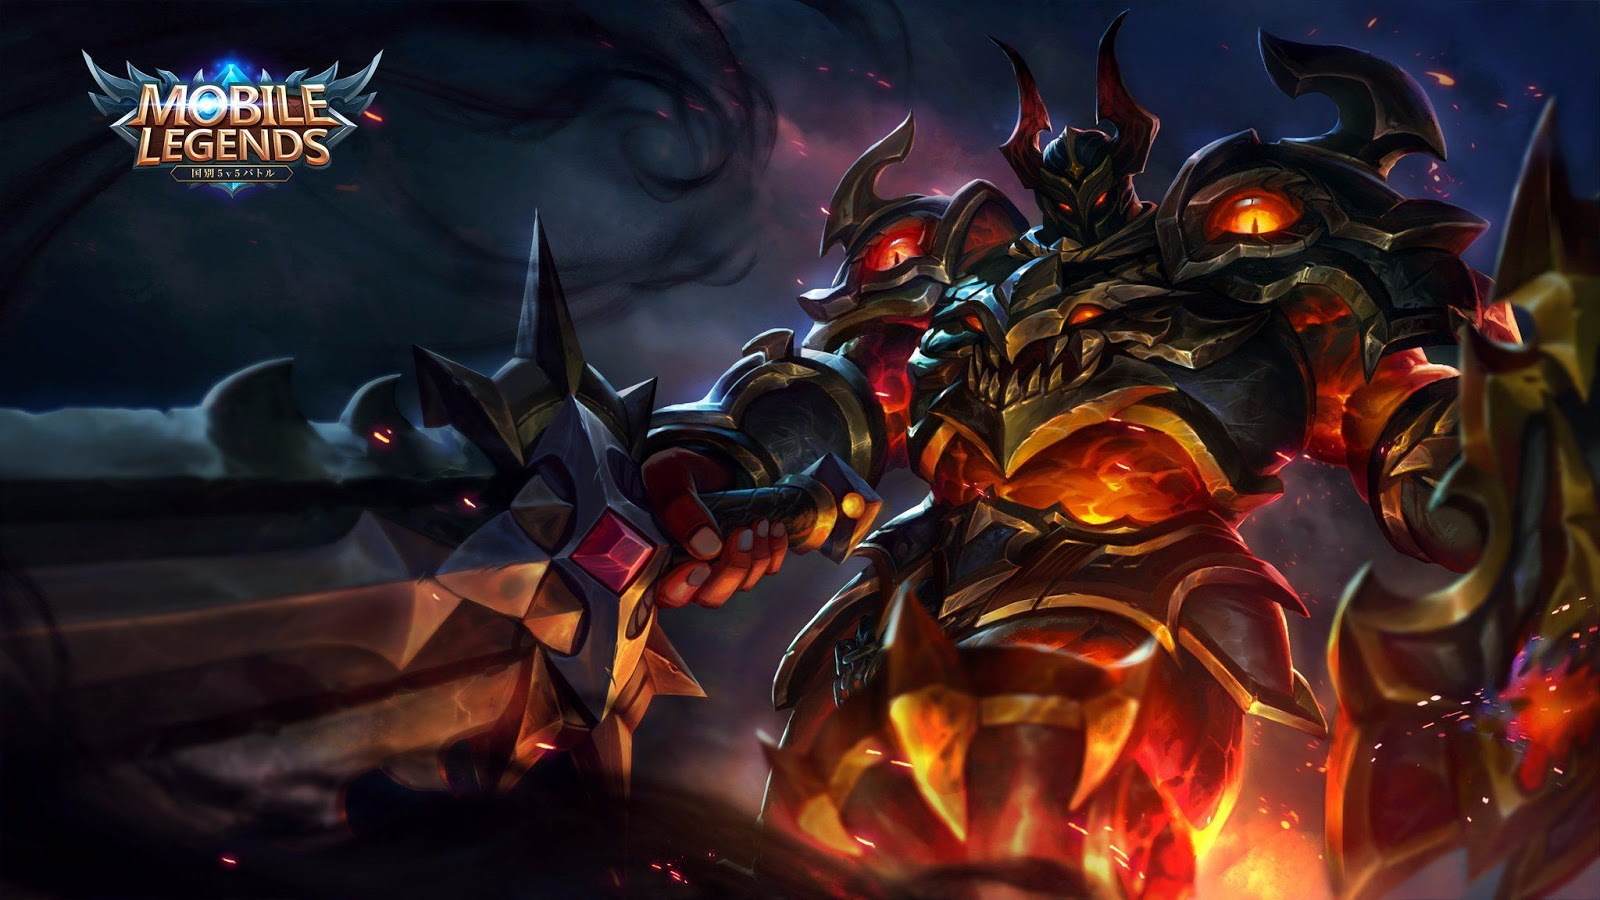 Kumpulan Gambar Dan Wallpaper HD Game Mobile Legends Skin